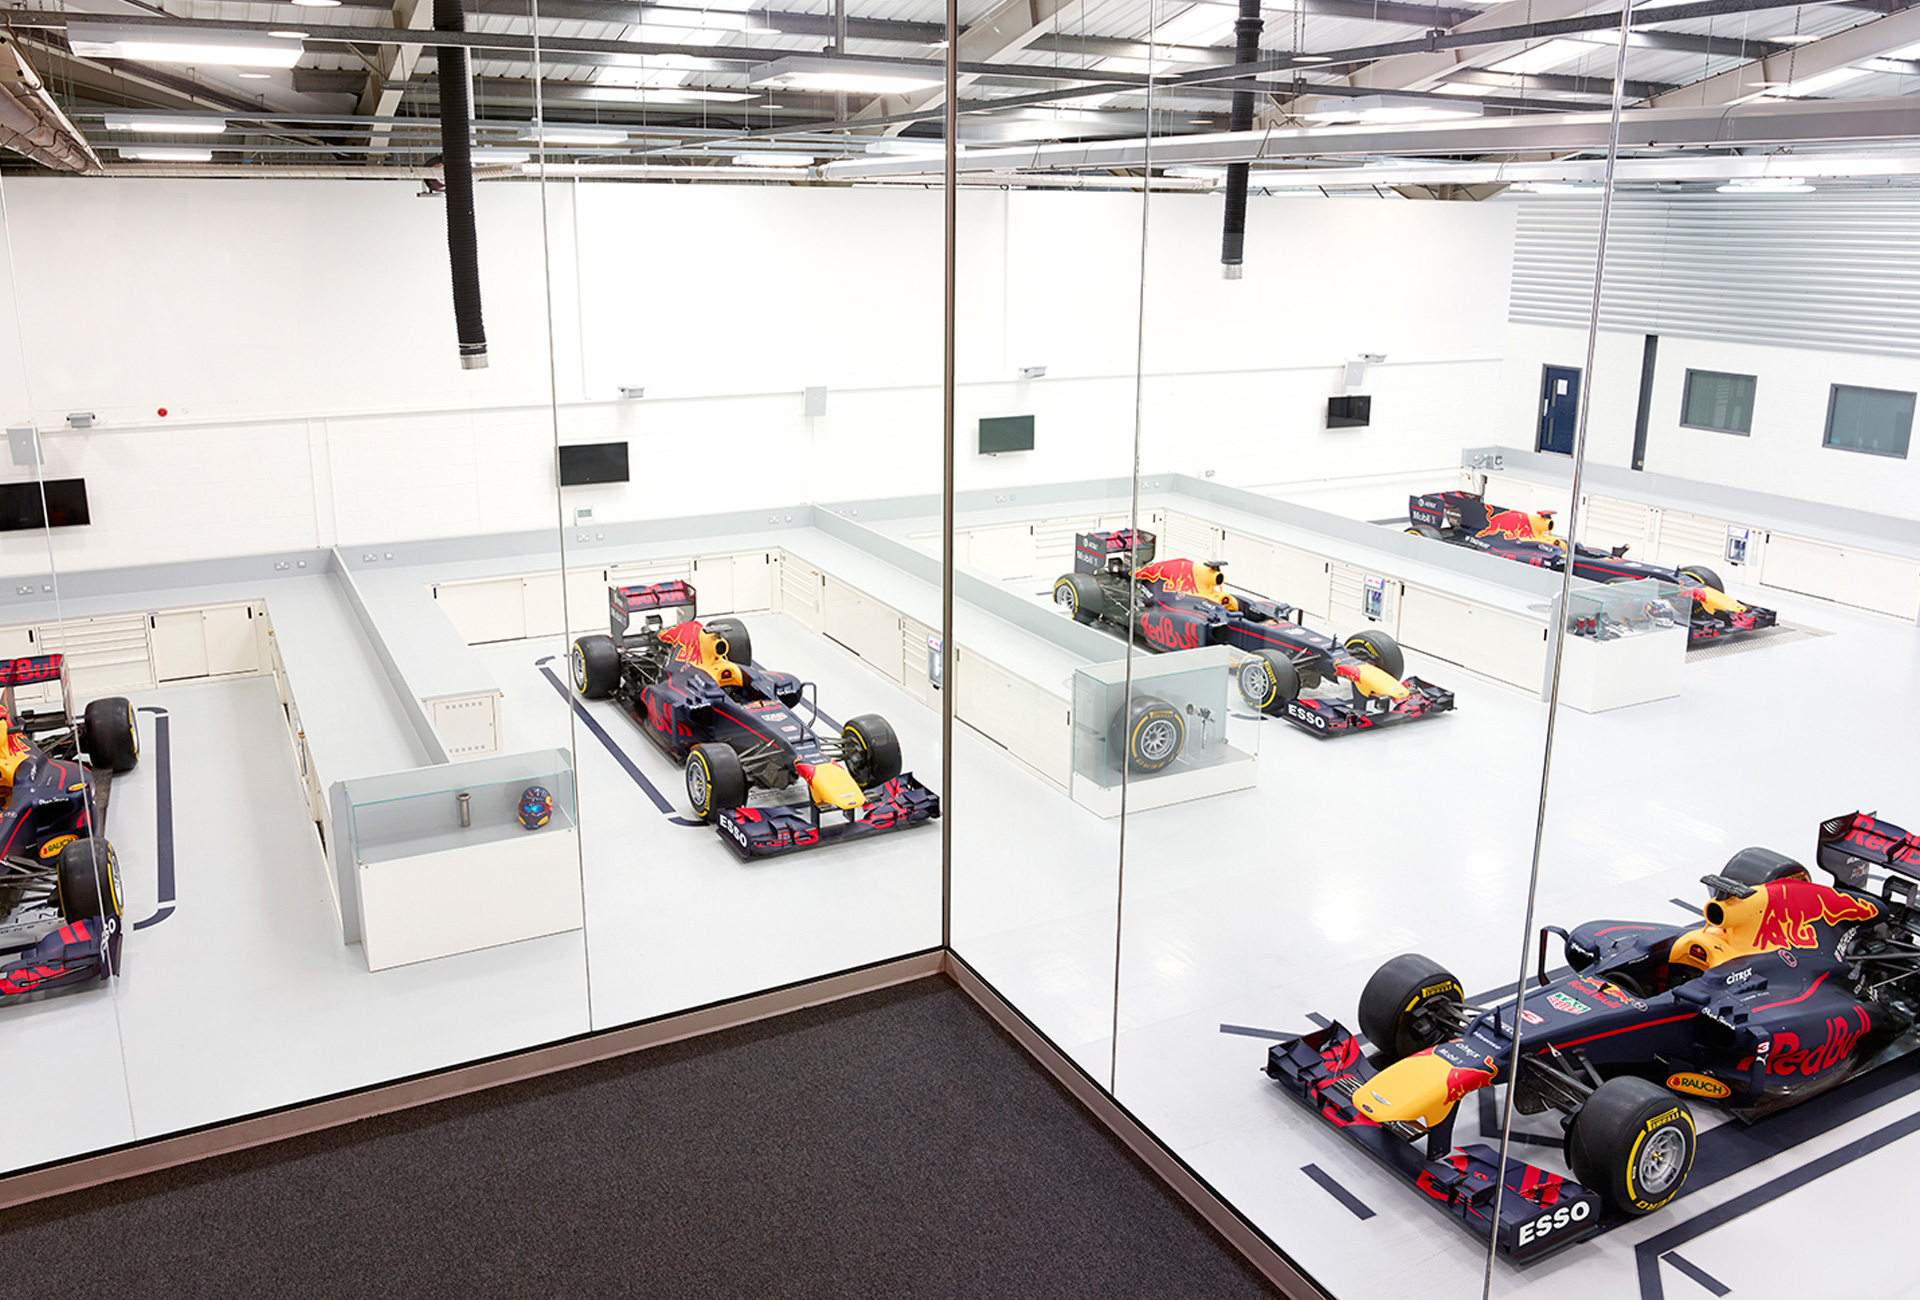 Transformation in action: Amulet hosts 'Innovation Day' at Aston Martin Red Bull Racing's new MK7 venue